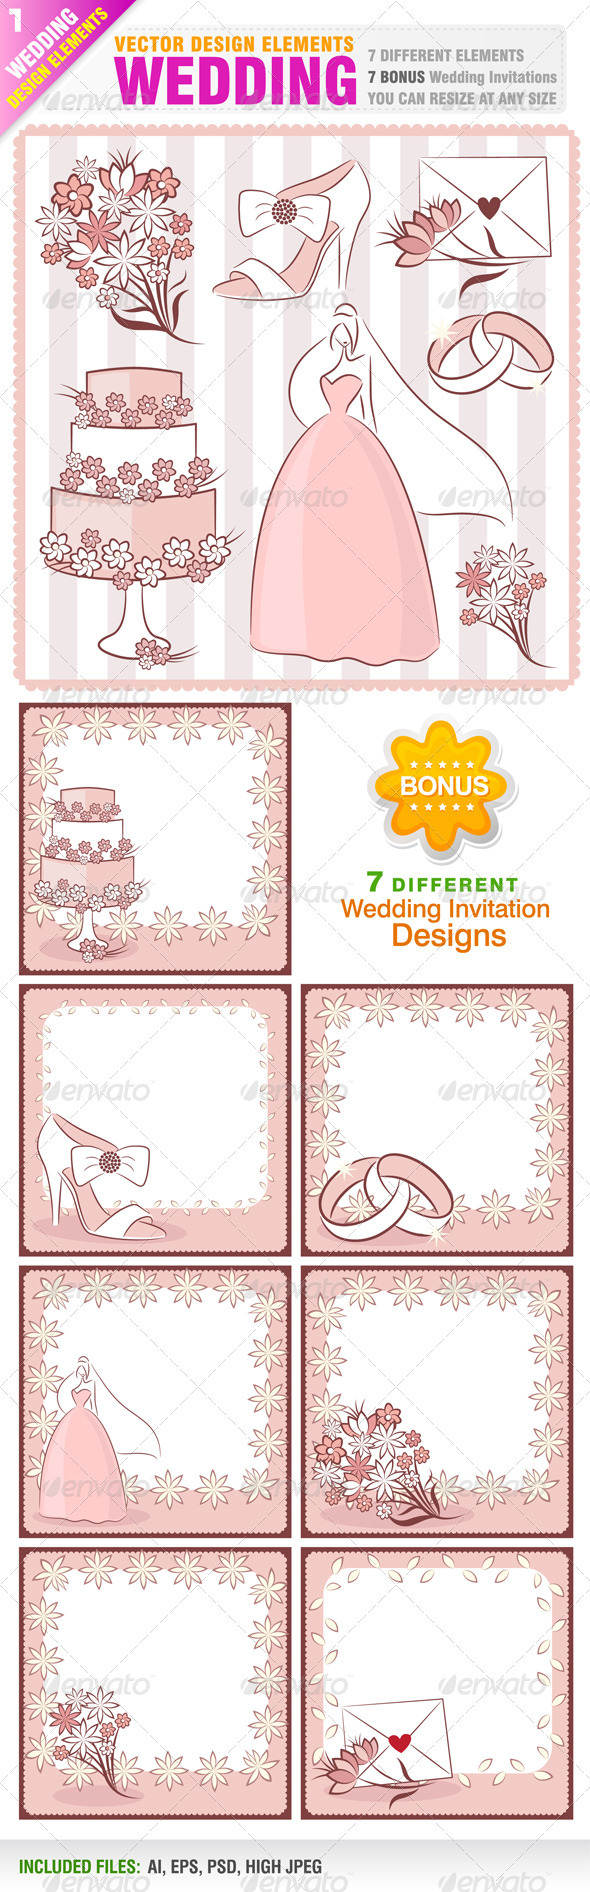 GraphicRiver Wedding Design Elements and Invitations 2257582